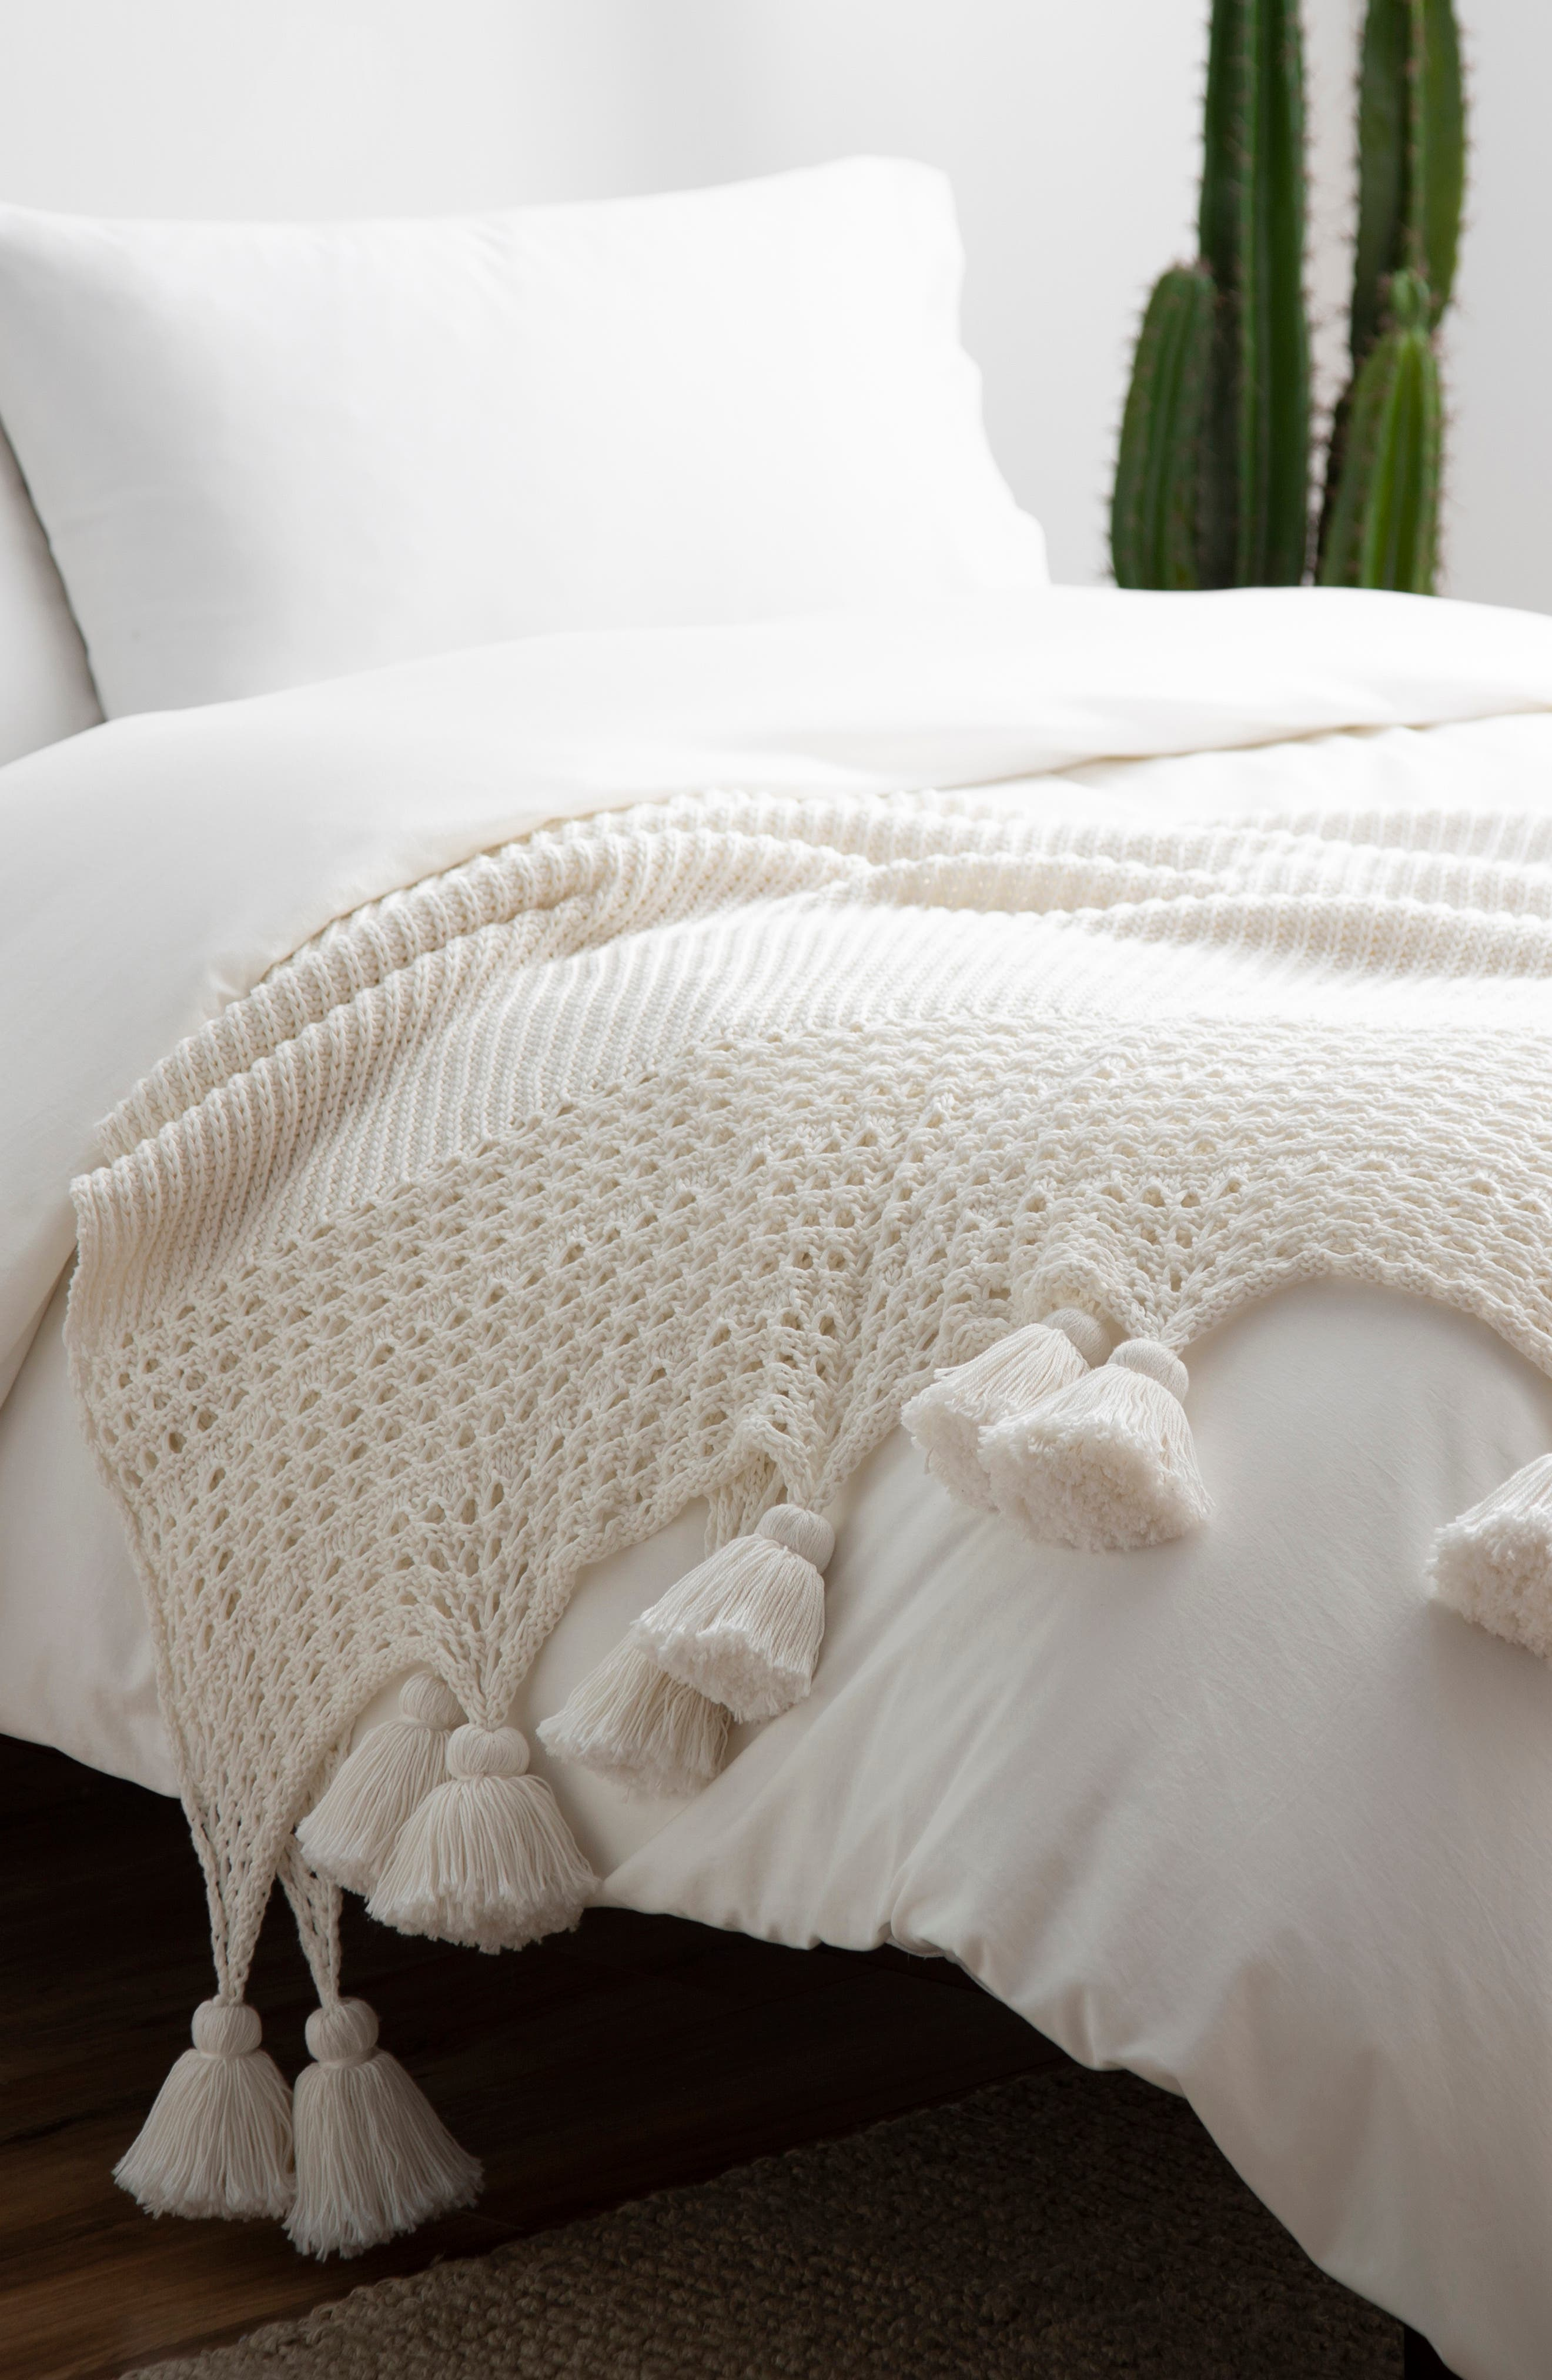 Elevate your living space and wrap yourself up in warmth with this beautifully knit throw finished with plush tassel trim. Style Name: UGG Oana Tassel Throw Blanket. Style Number: 6070527. Available in stores.